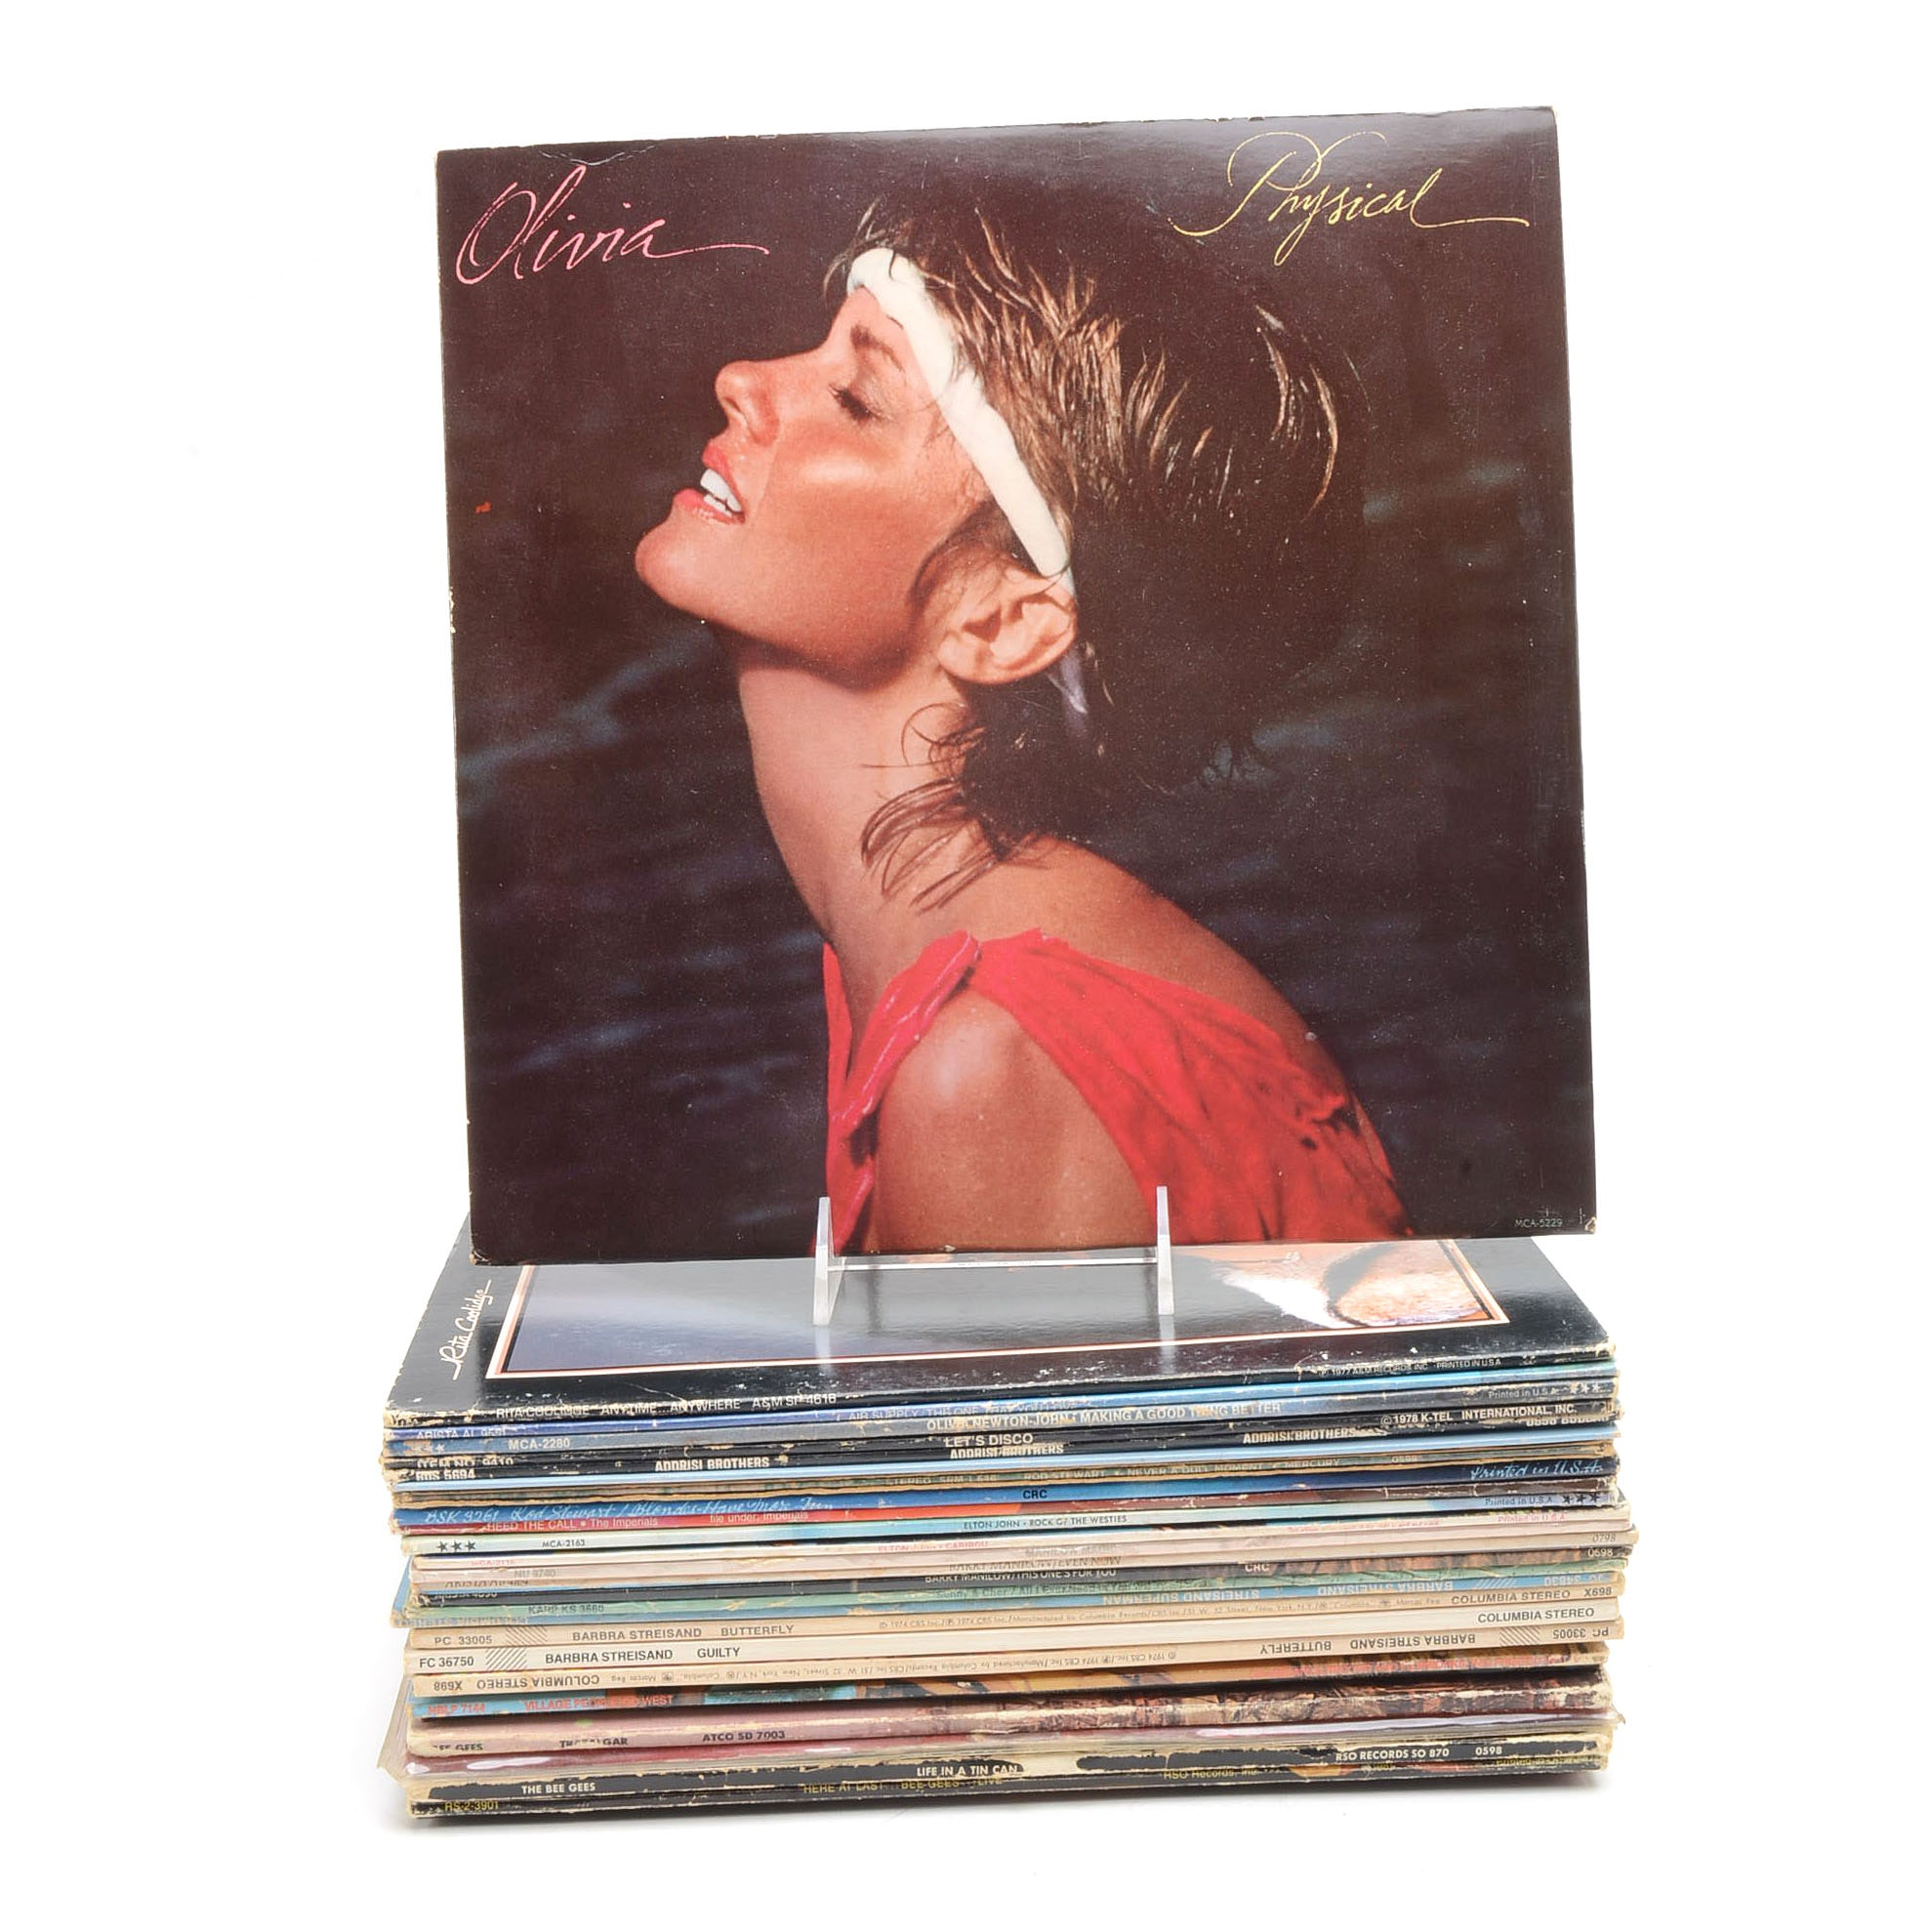 Collection of Vintage 1970's Pop and Disco LPs